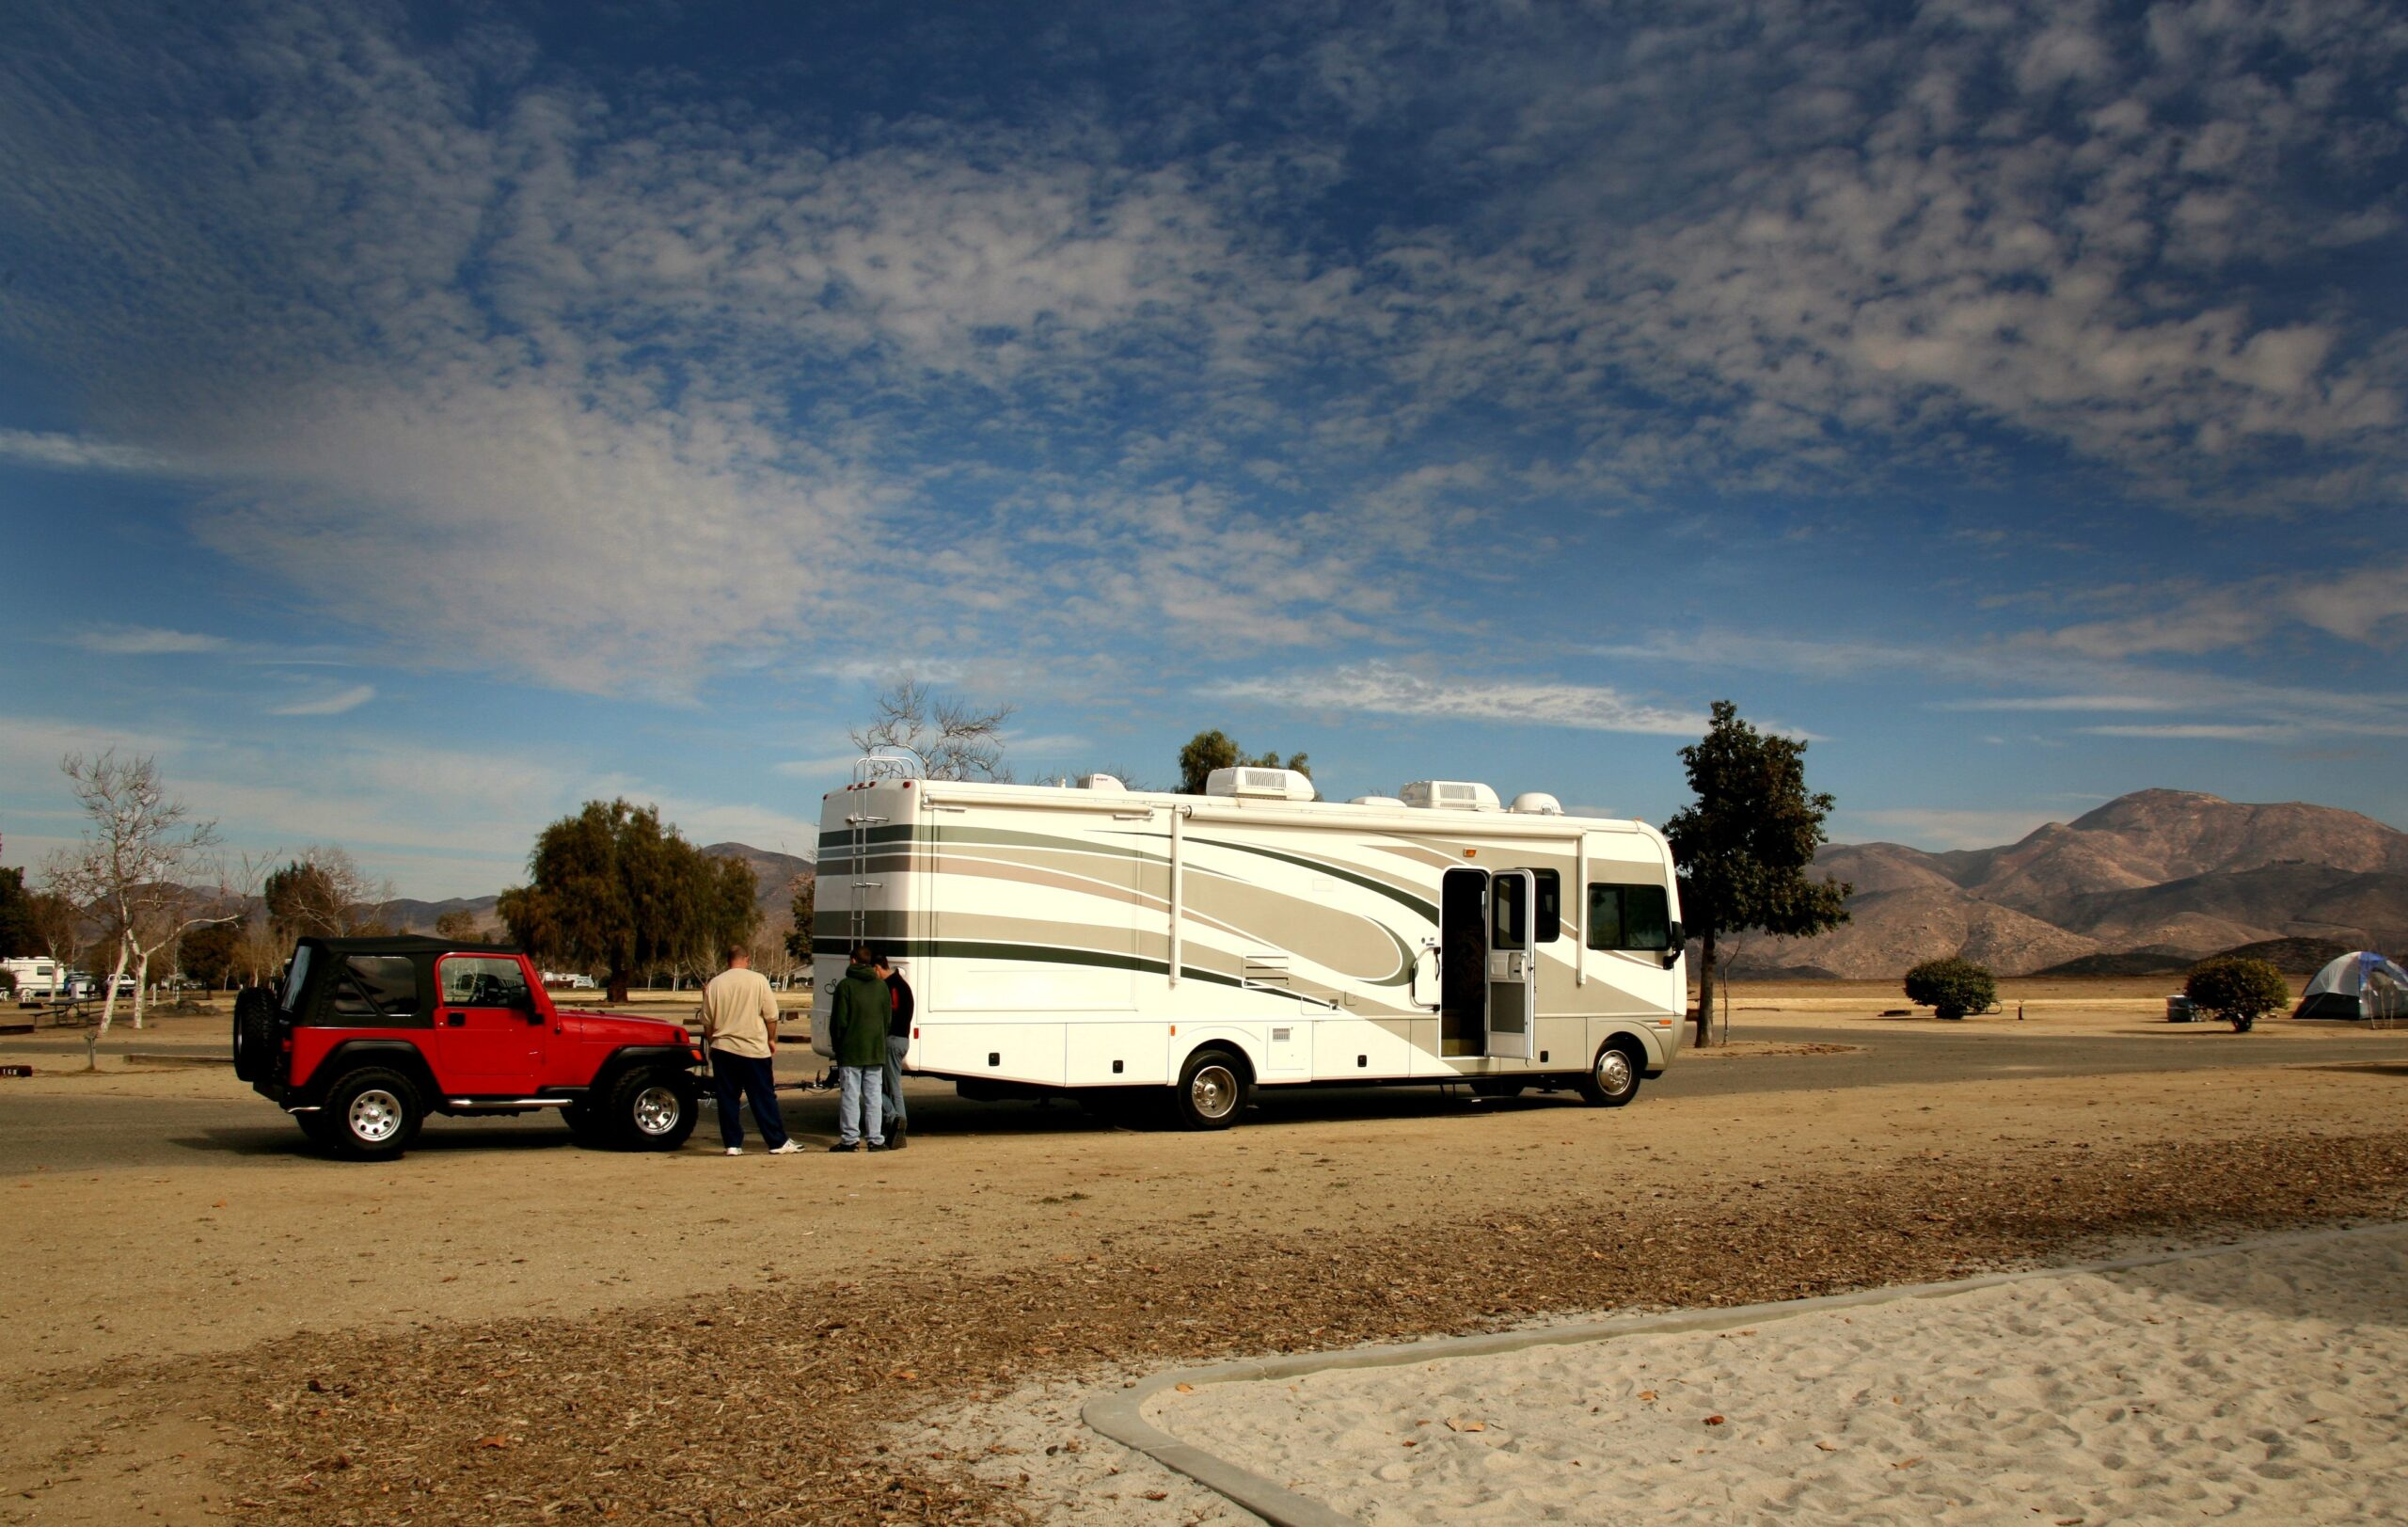 Towing a Vehicle Behind Your RV